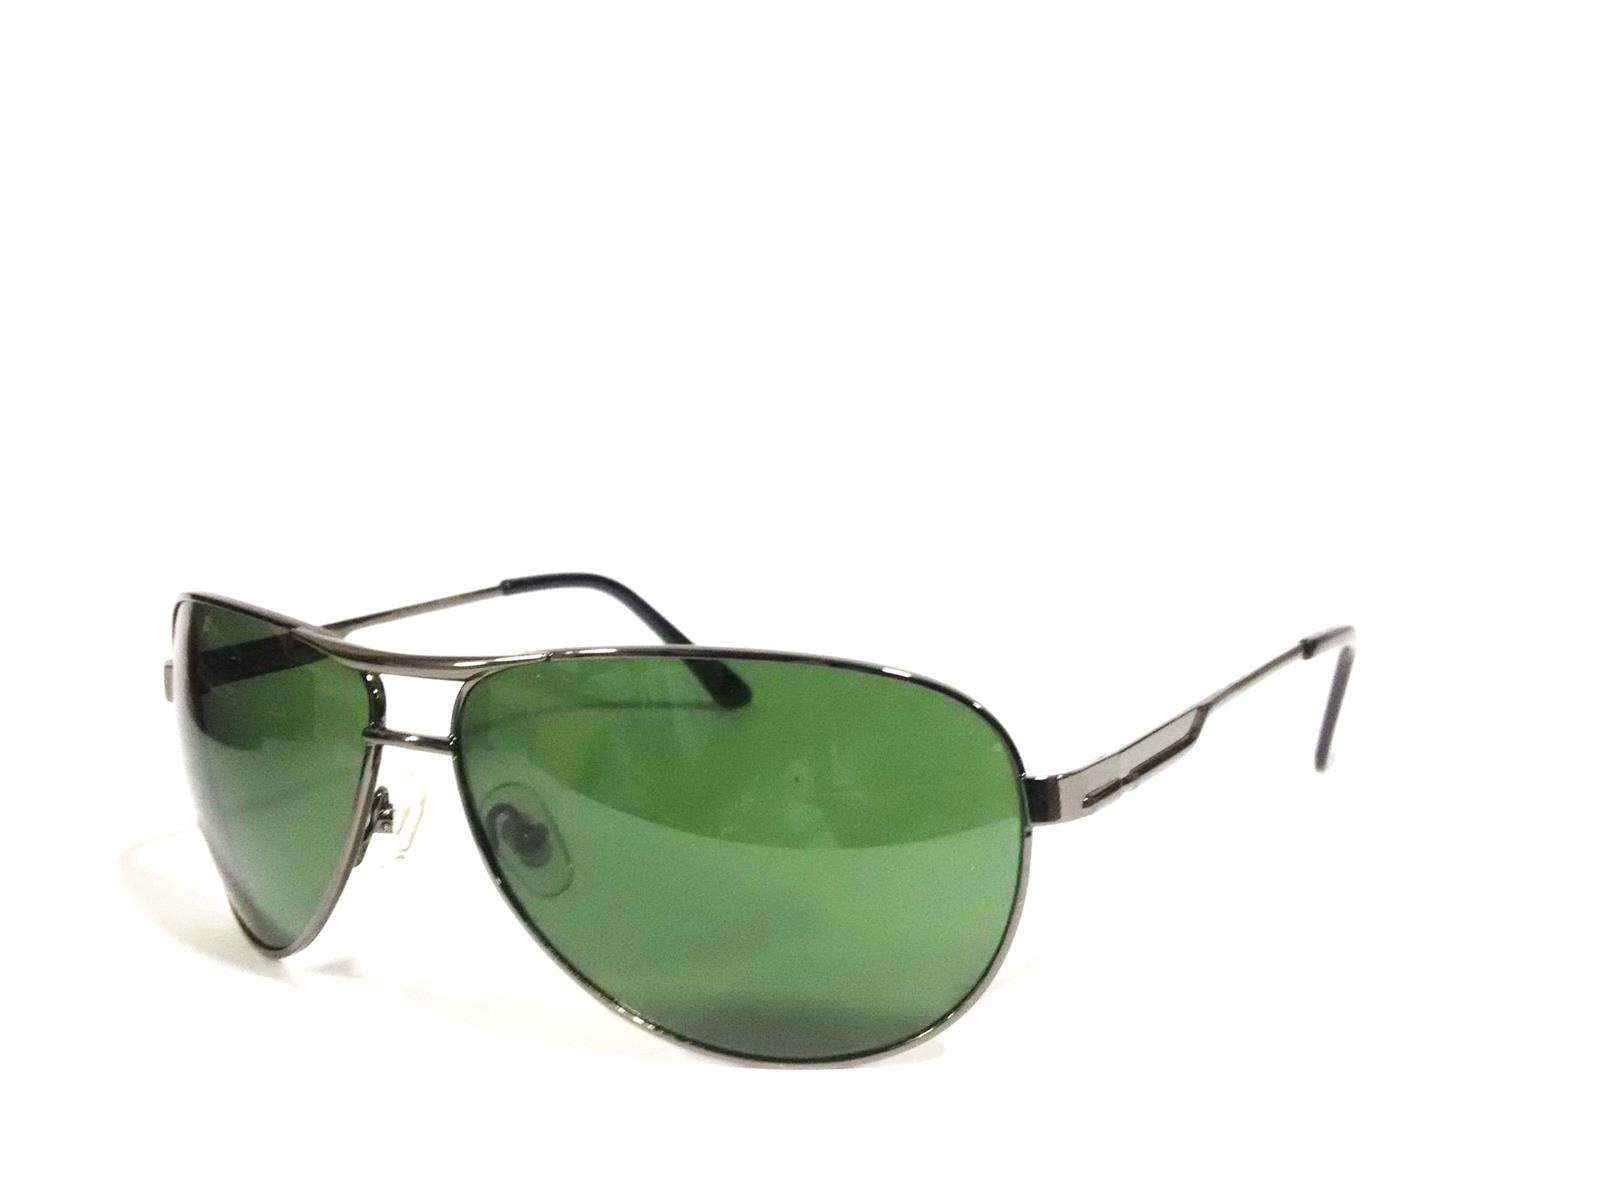 Grey Aviator Sunglasses for large face 3325gm